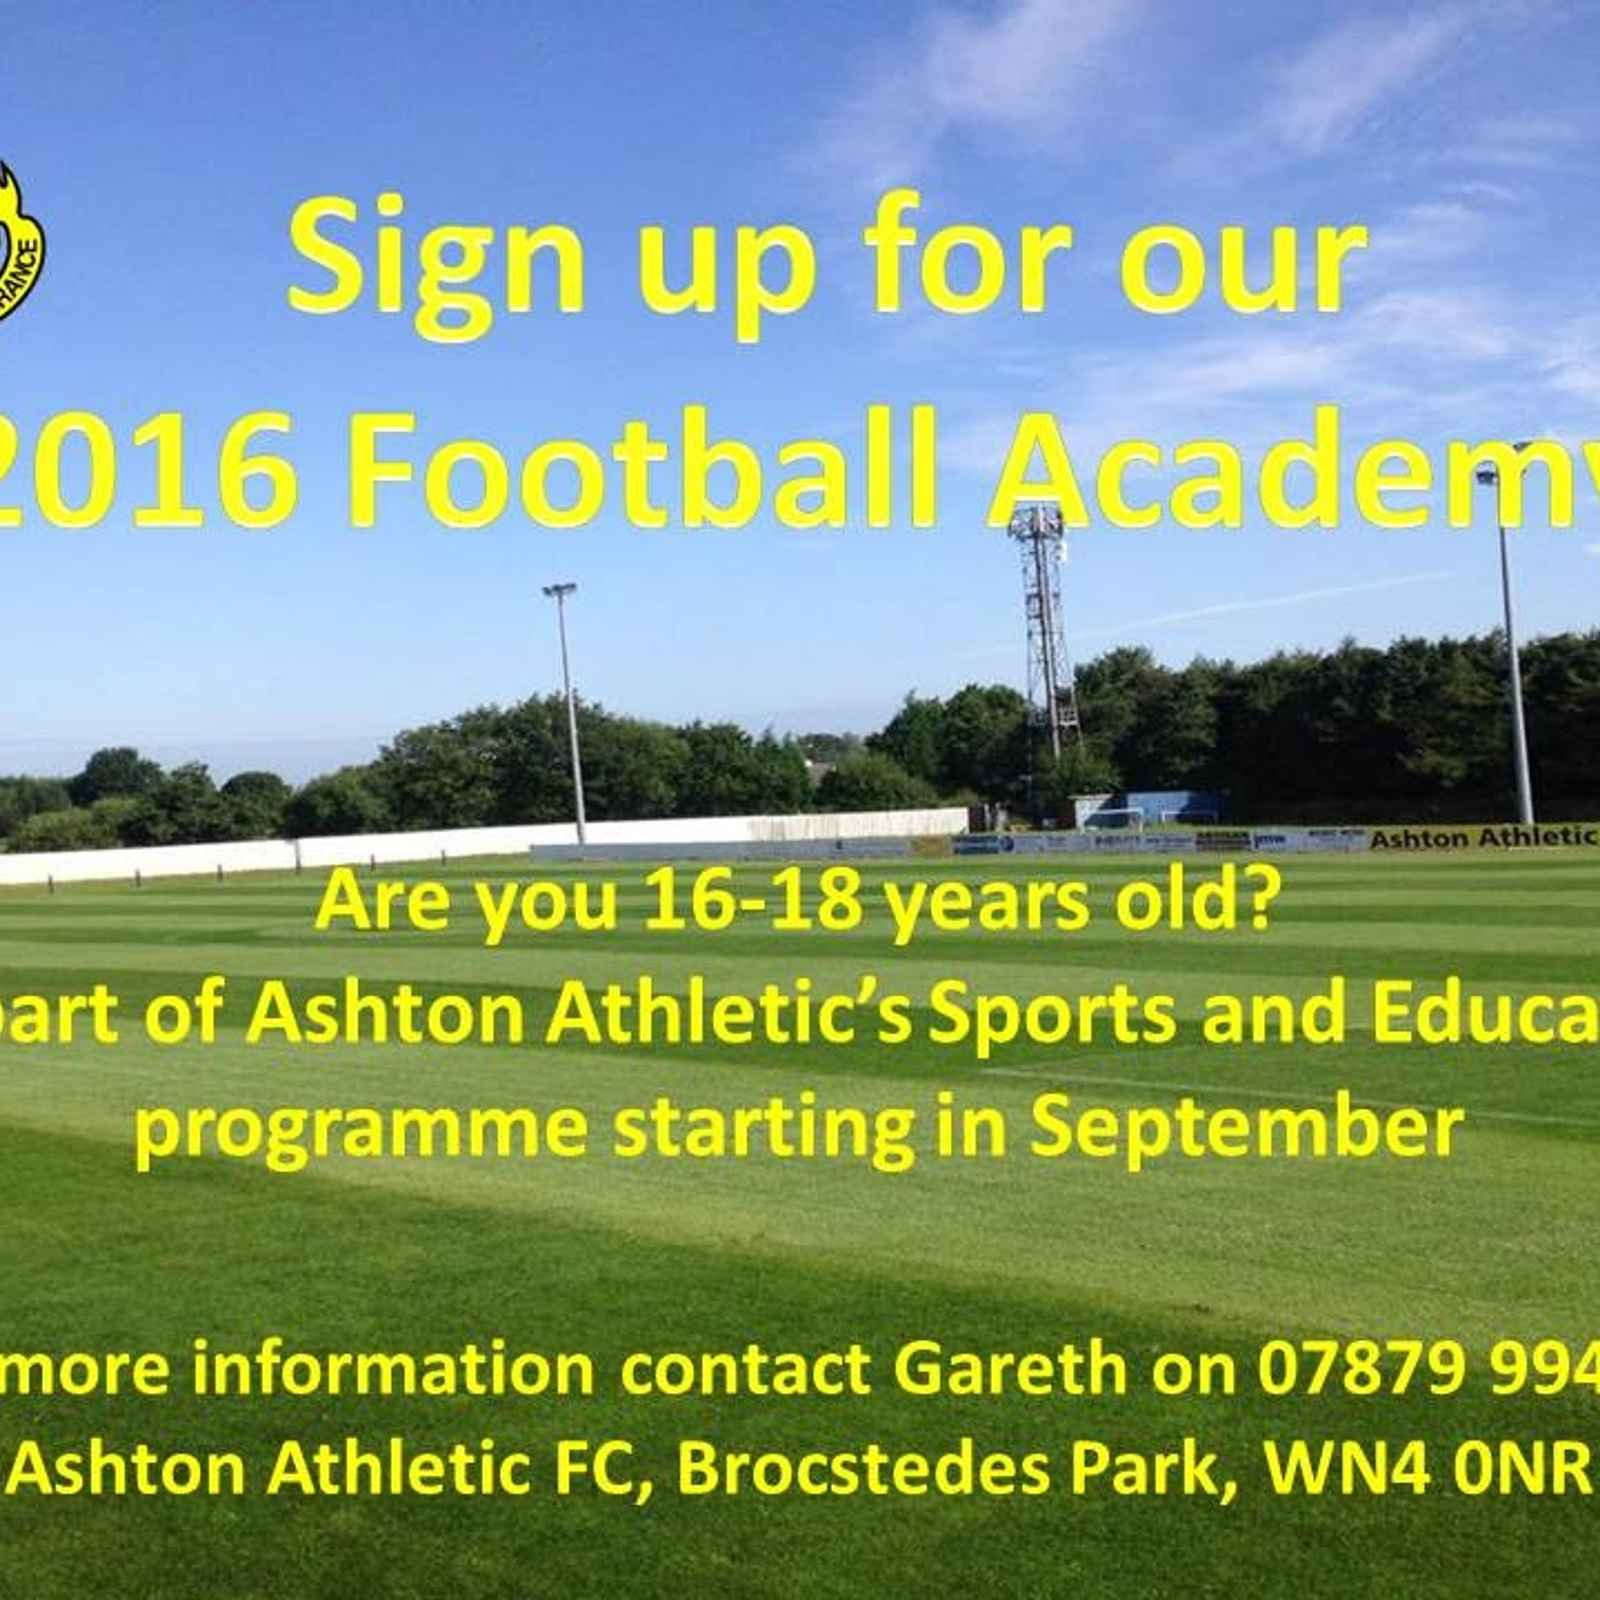 Sign up for our 2016 Football Academy